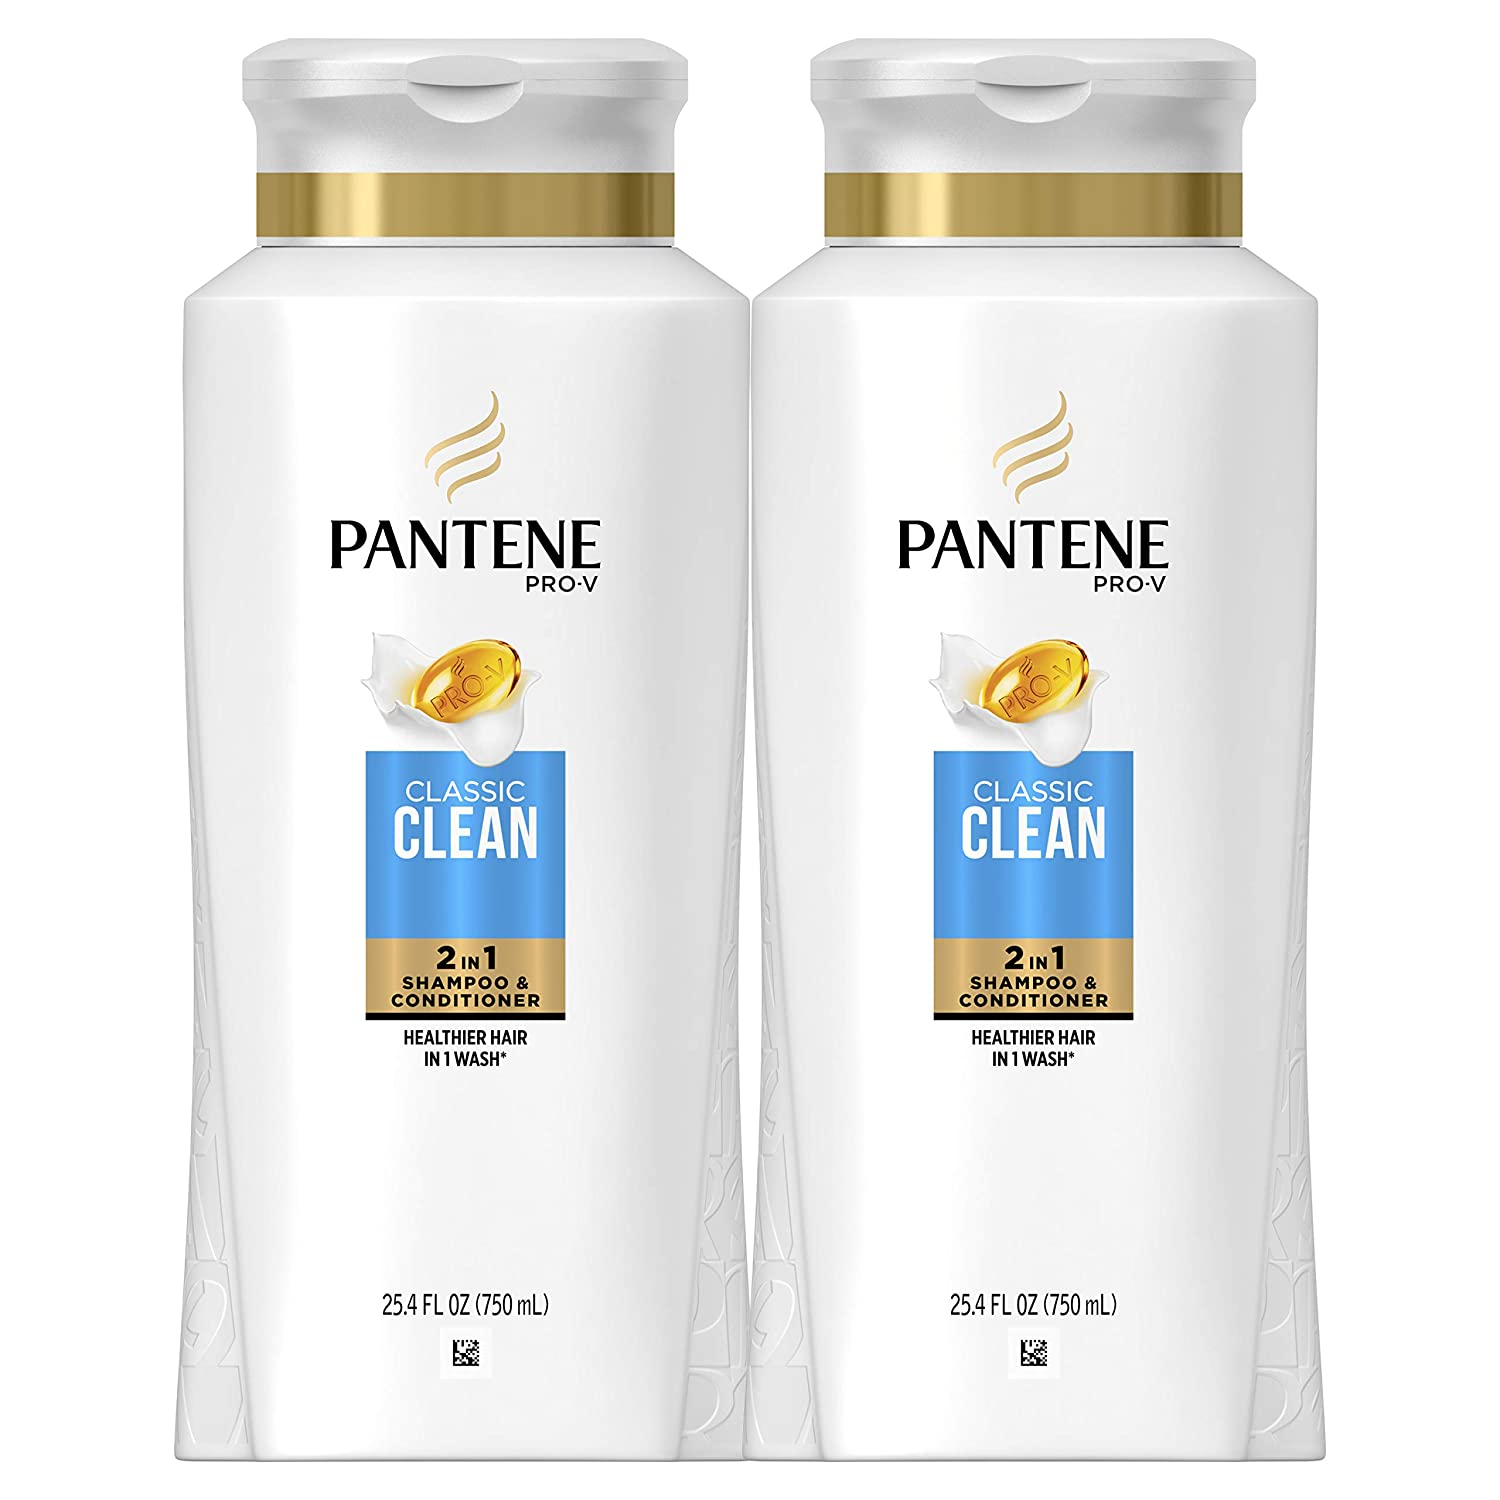 Pantene, Shampoo and Conditioner 2 in 1, Pro-V Classic Clean, 25.4 Fl Oz, Pack of 2